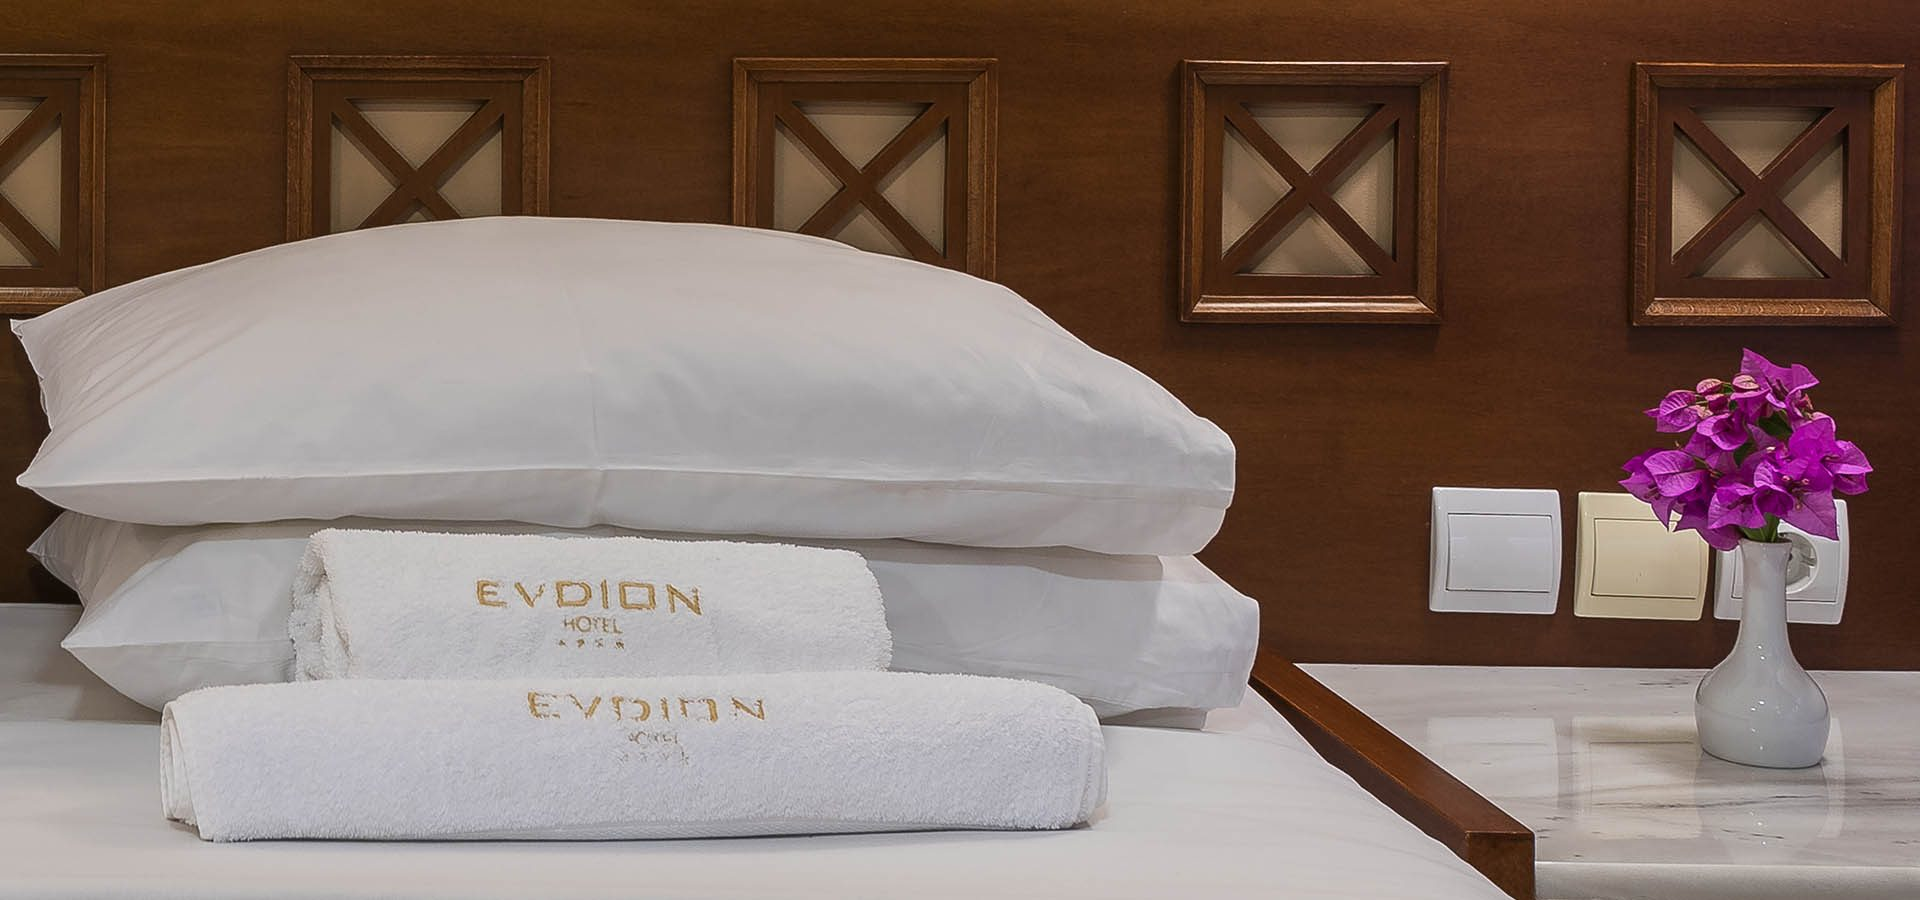 pieria hotel offers - Evdion Hotel